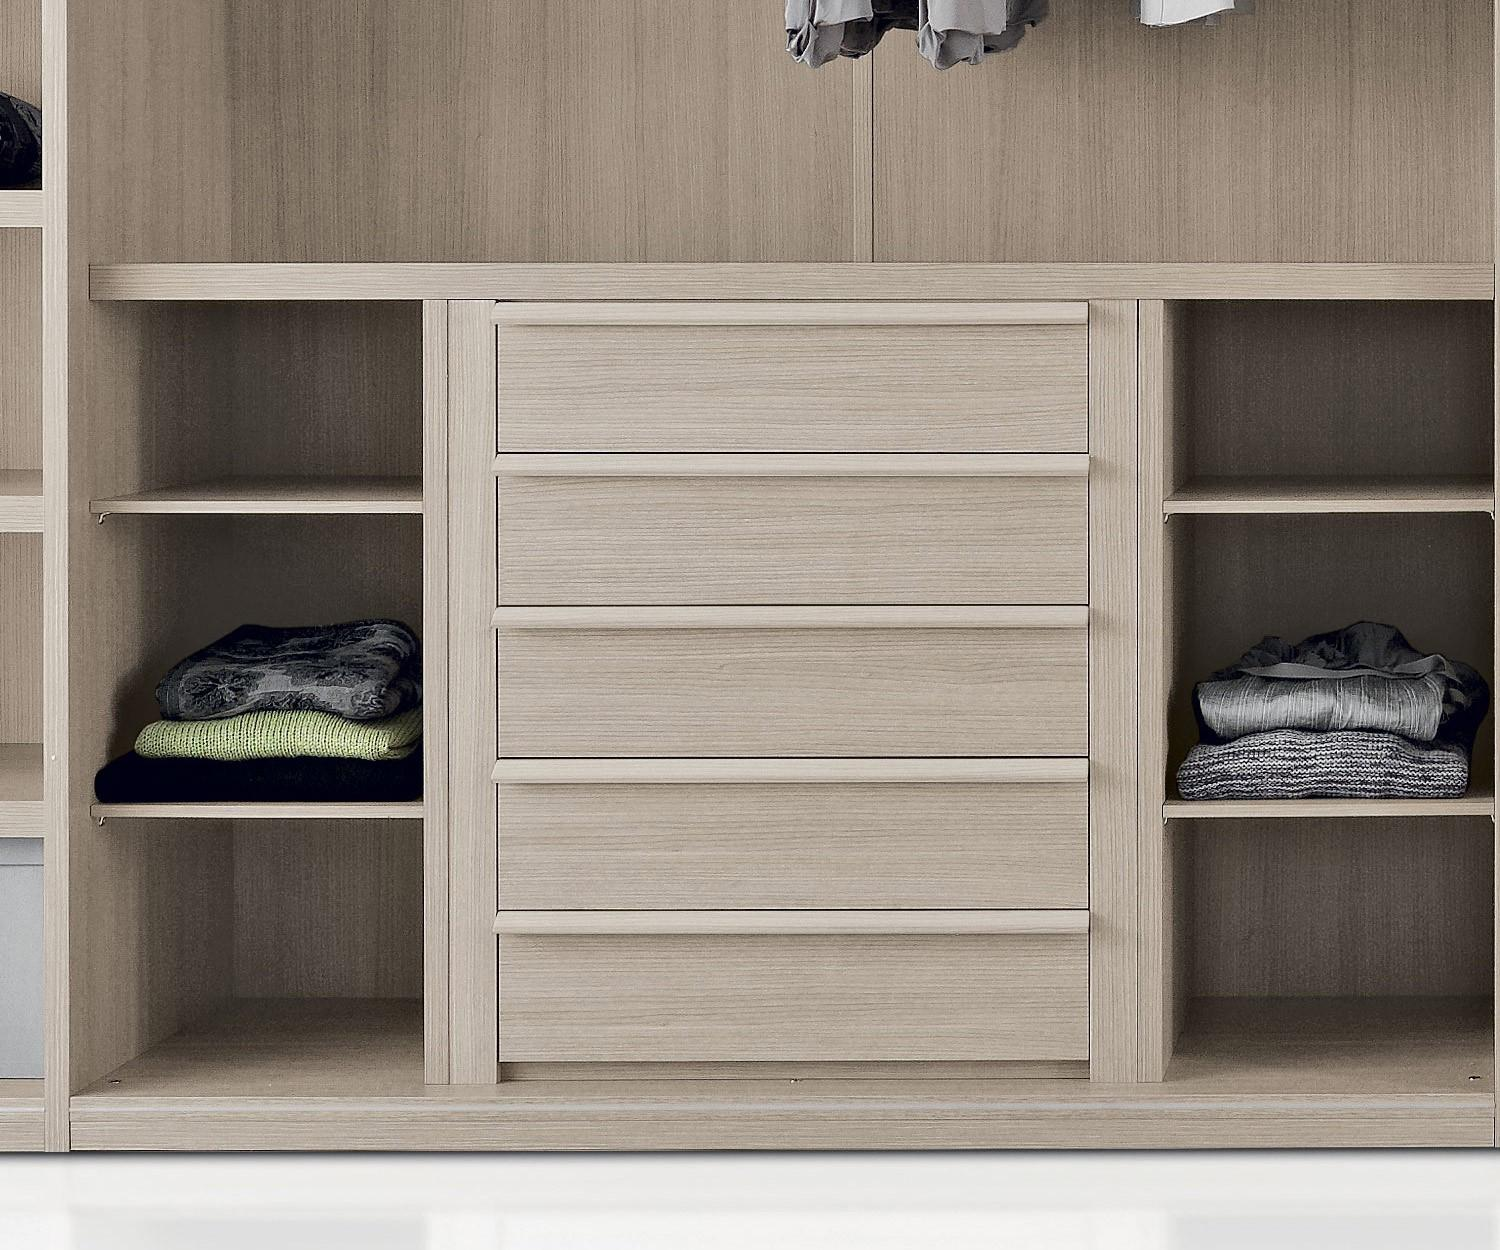 novamobili kleiderschrank zubeh r armadi 5er schubladen. Black Bedroom Furniture Sets. Home Design Ideas